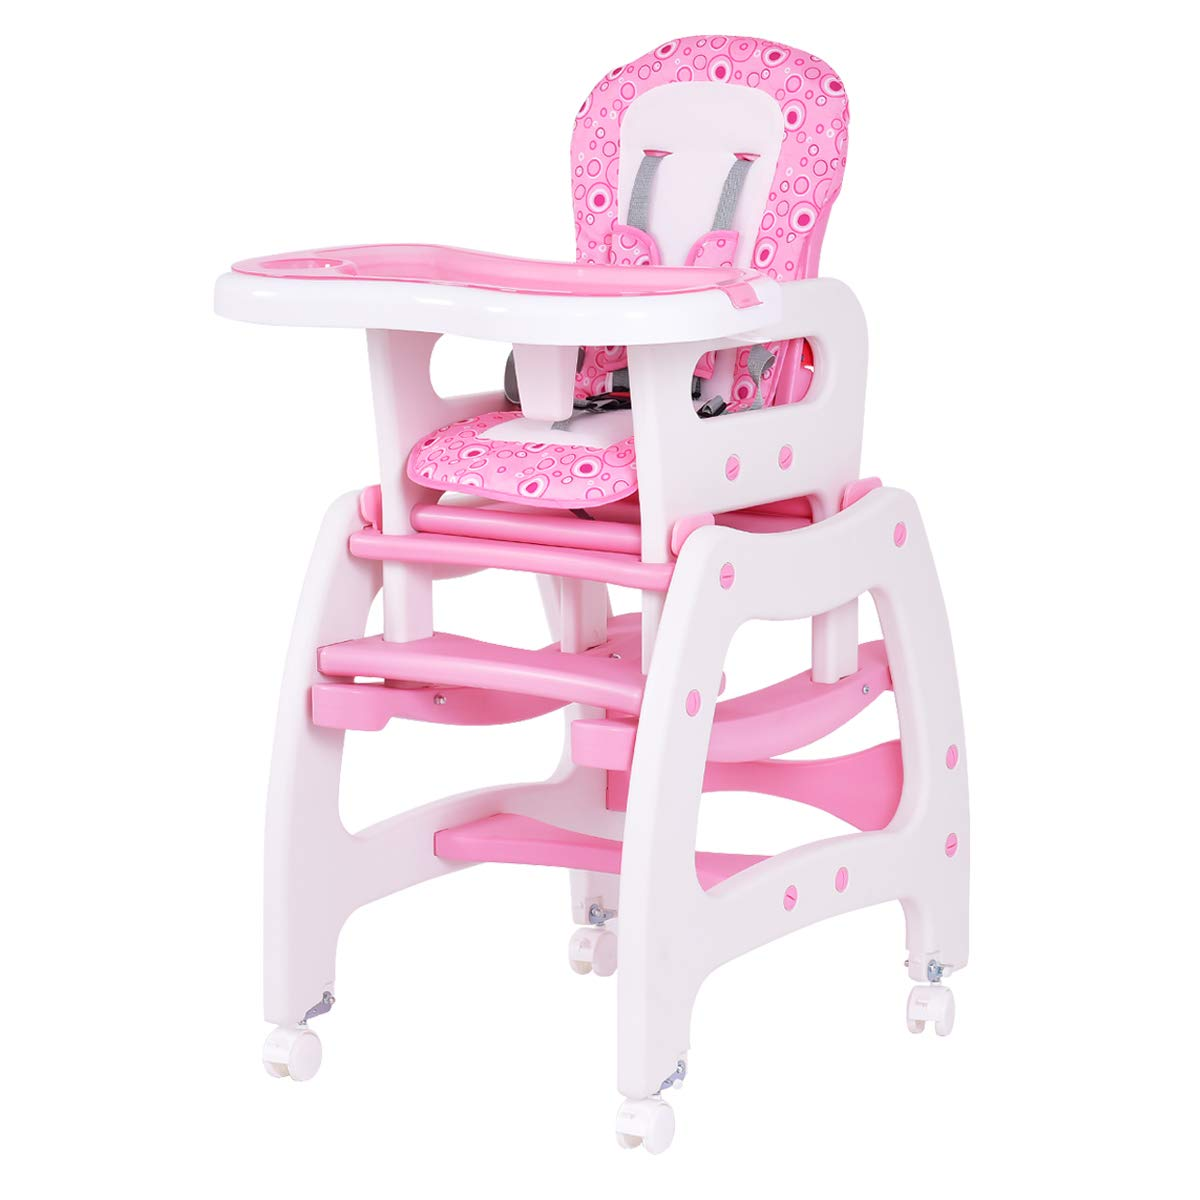 Costzon Baby High Chair, 3 in 1 Convertible Play Table Set, Booster Rocking Seat with Removable Feeding Tray, 5-Point Harness, Lockable Wheels (Pink) by Costzon